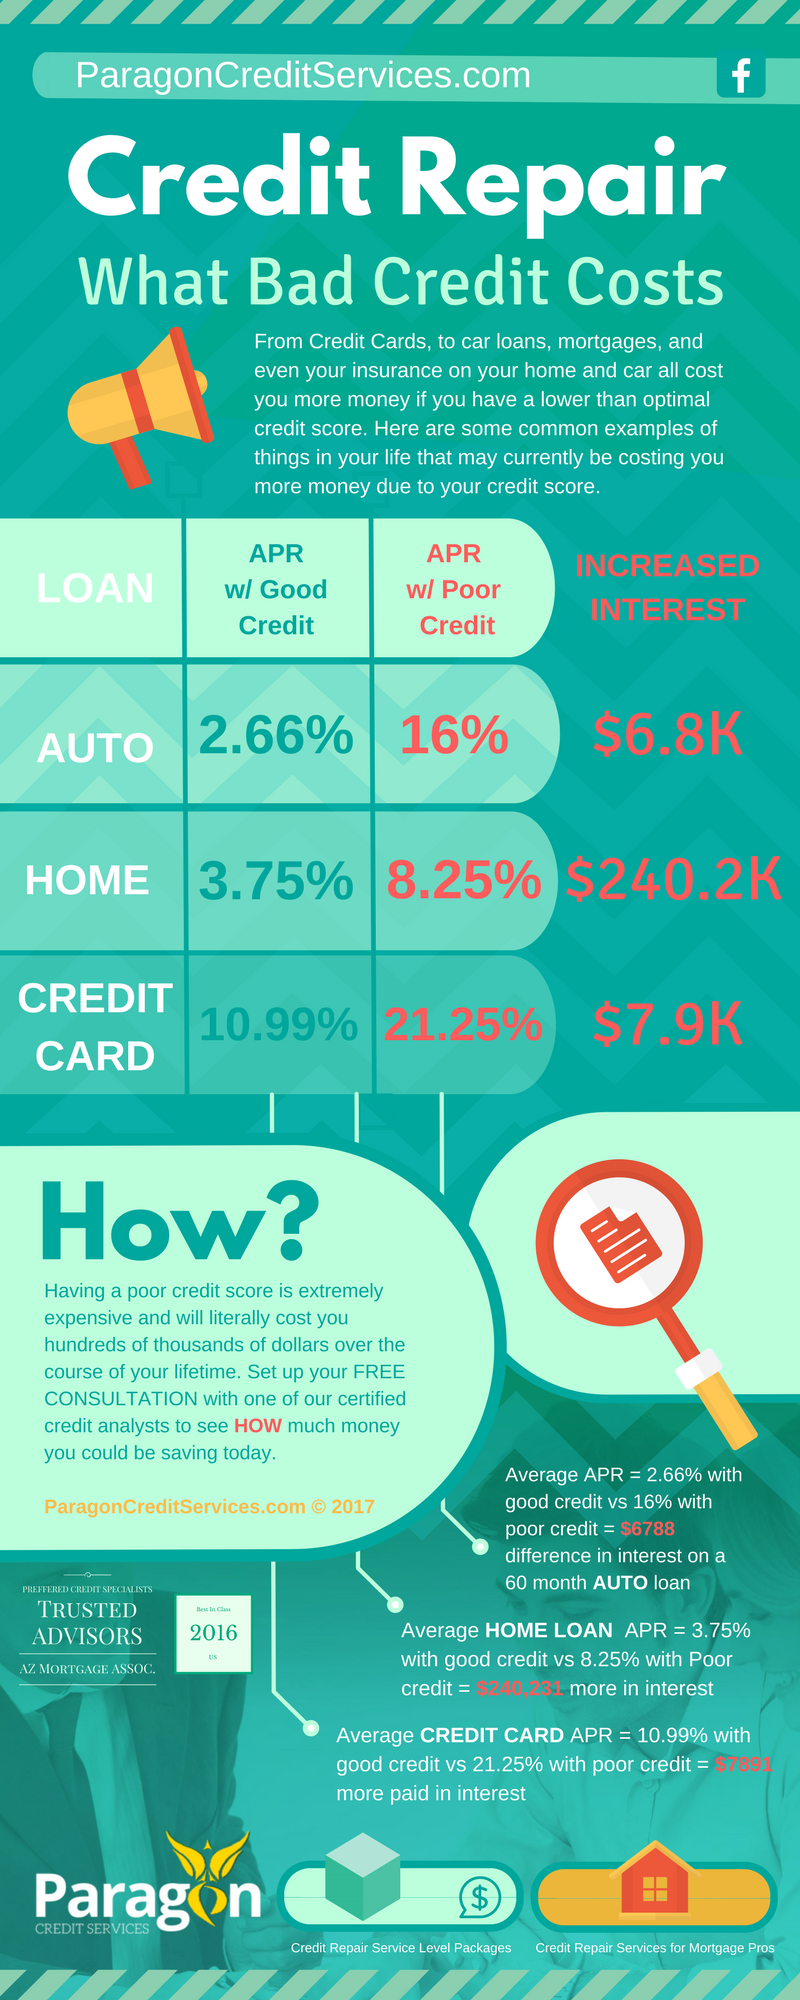 WHAT BAD CREDIT COSTS